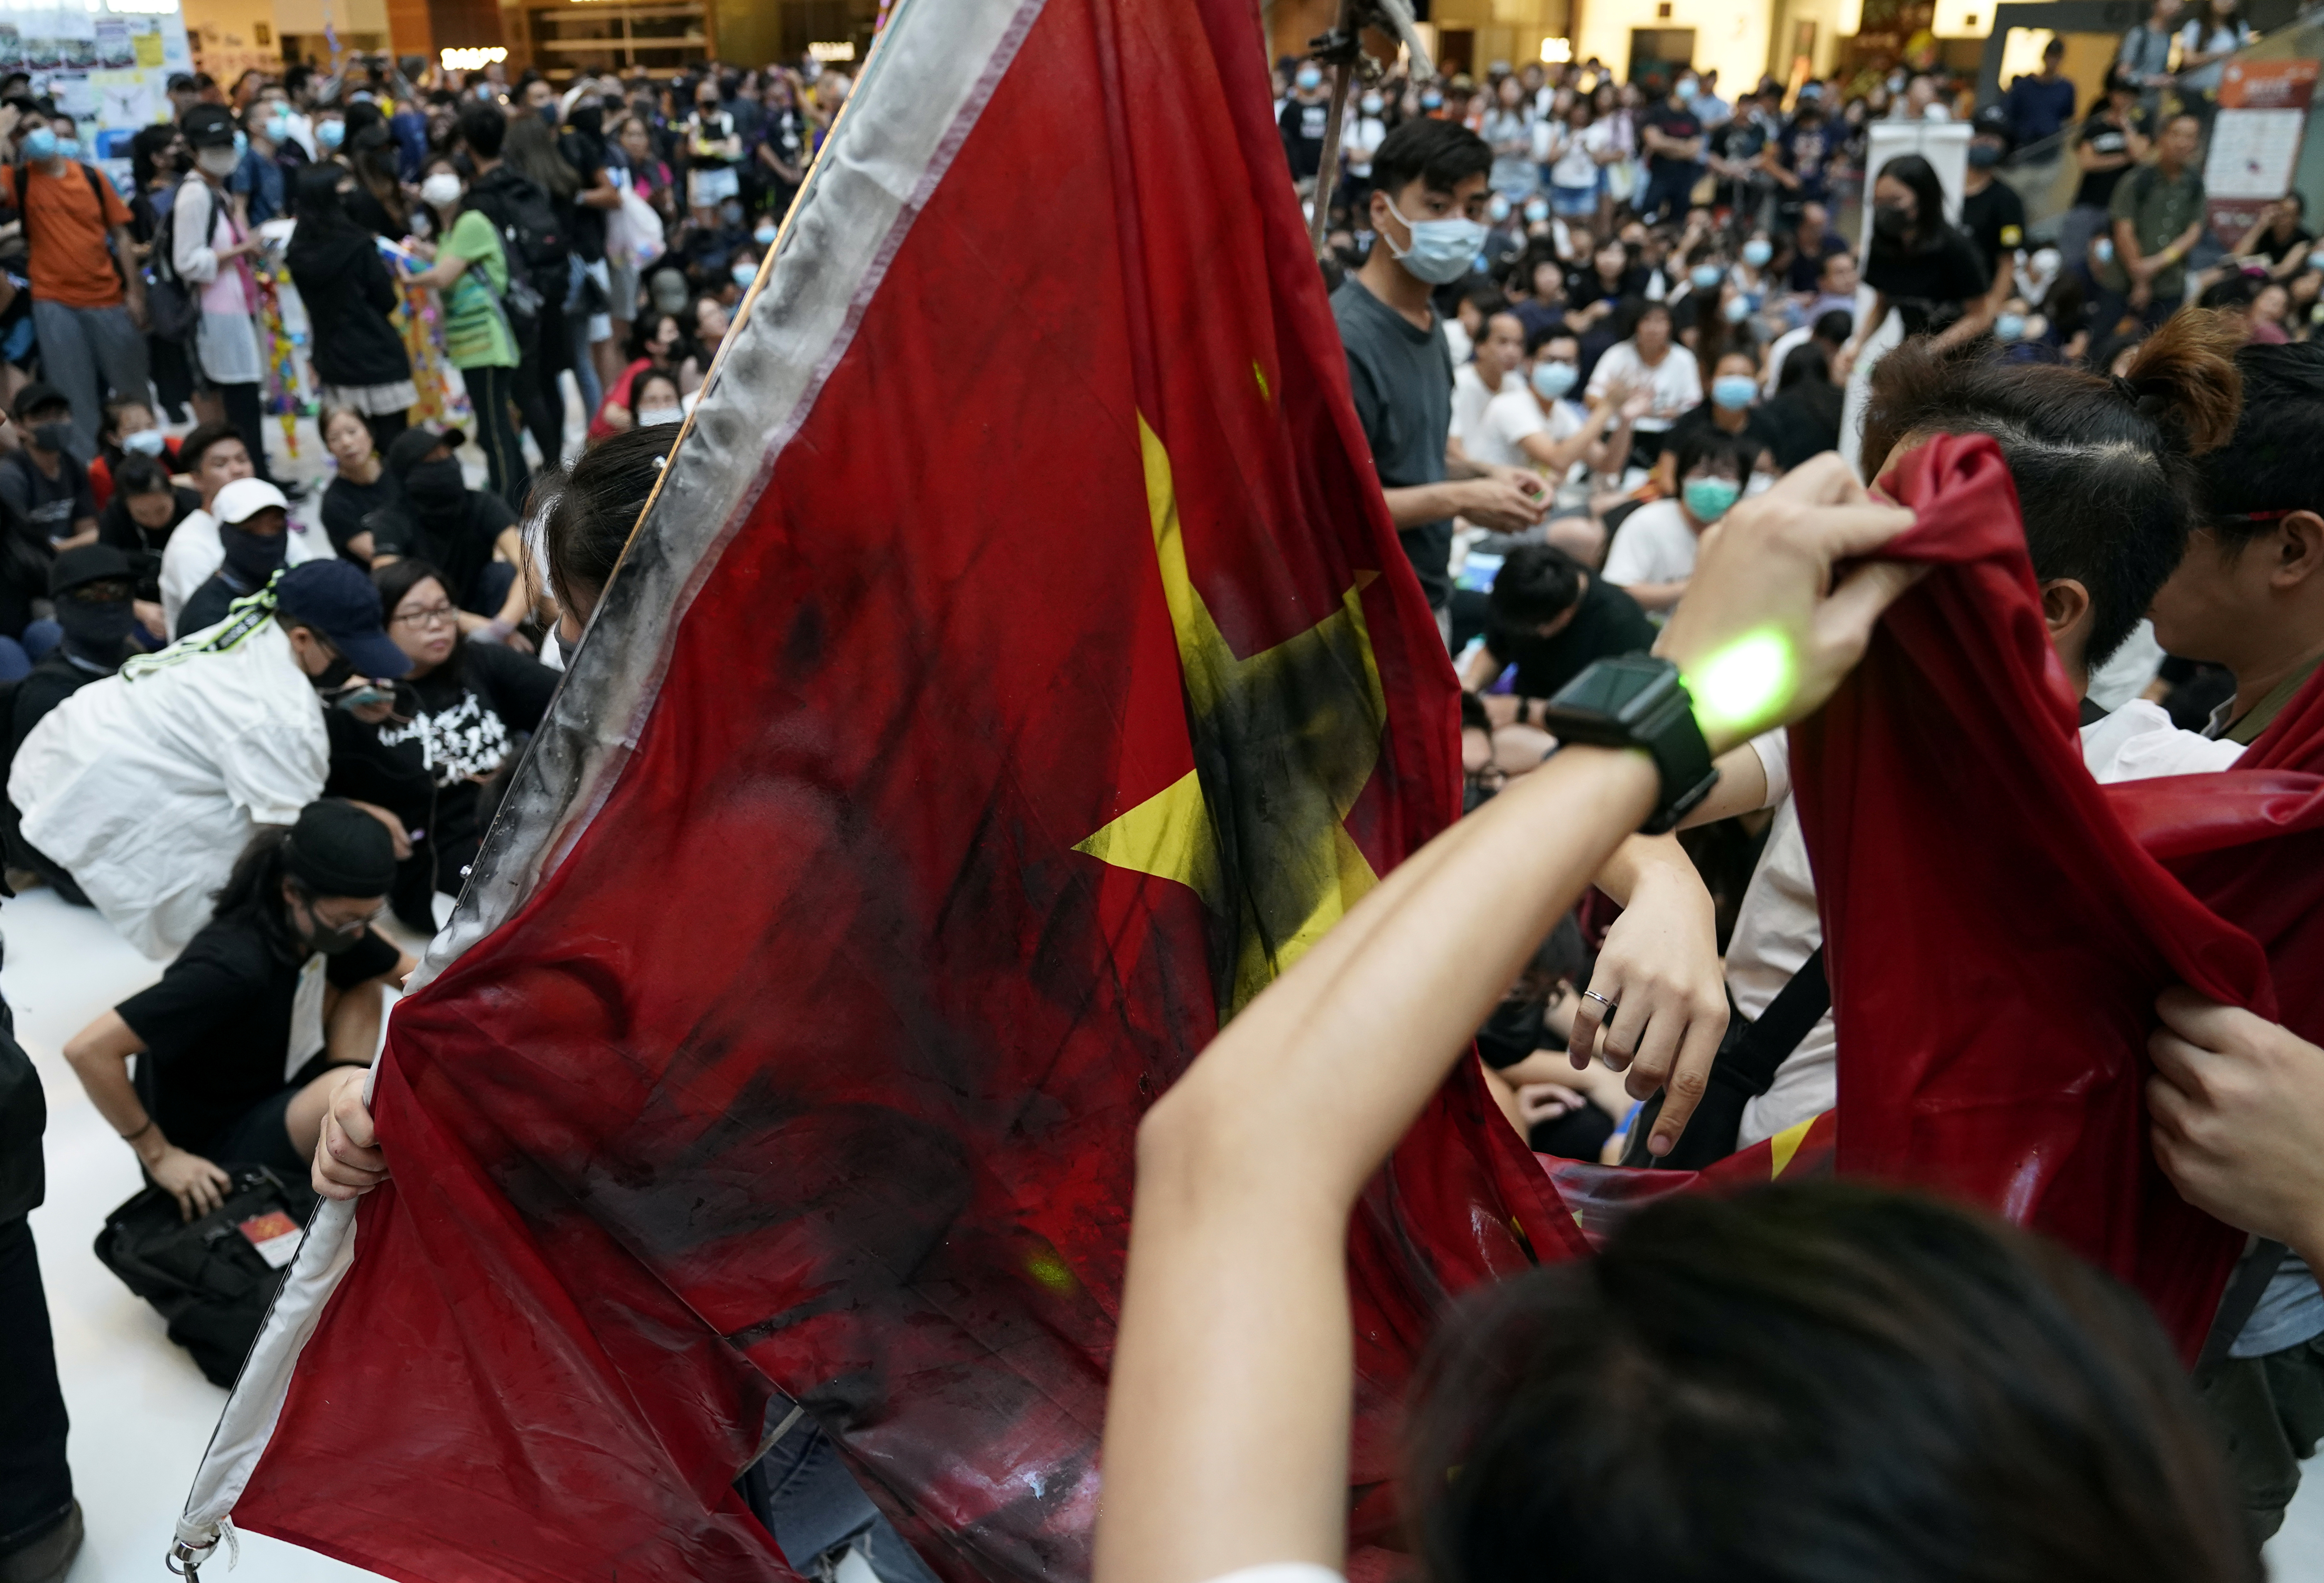 Hong Kong protests: Riot police to prevent anti-government demonstrations